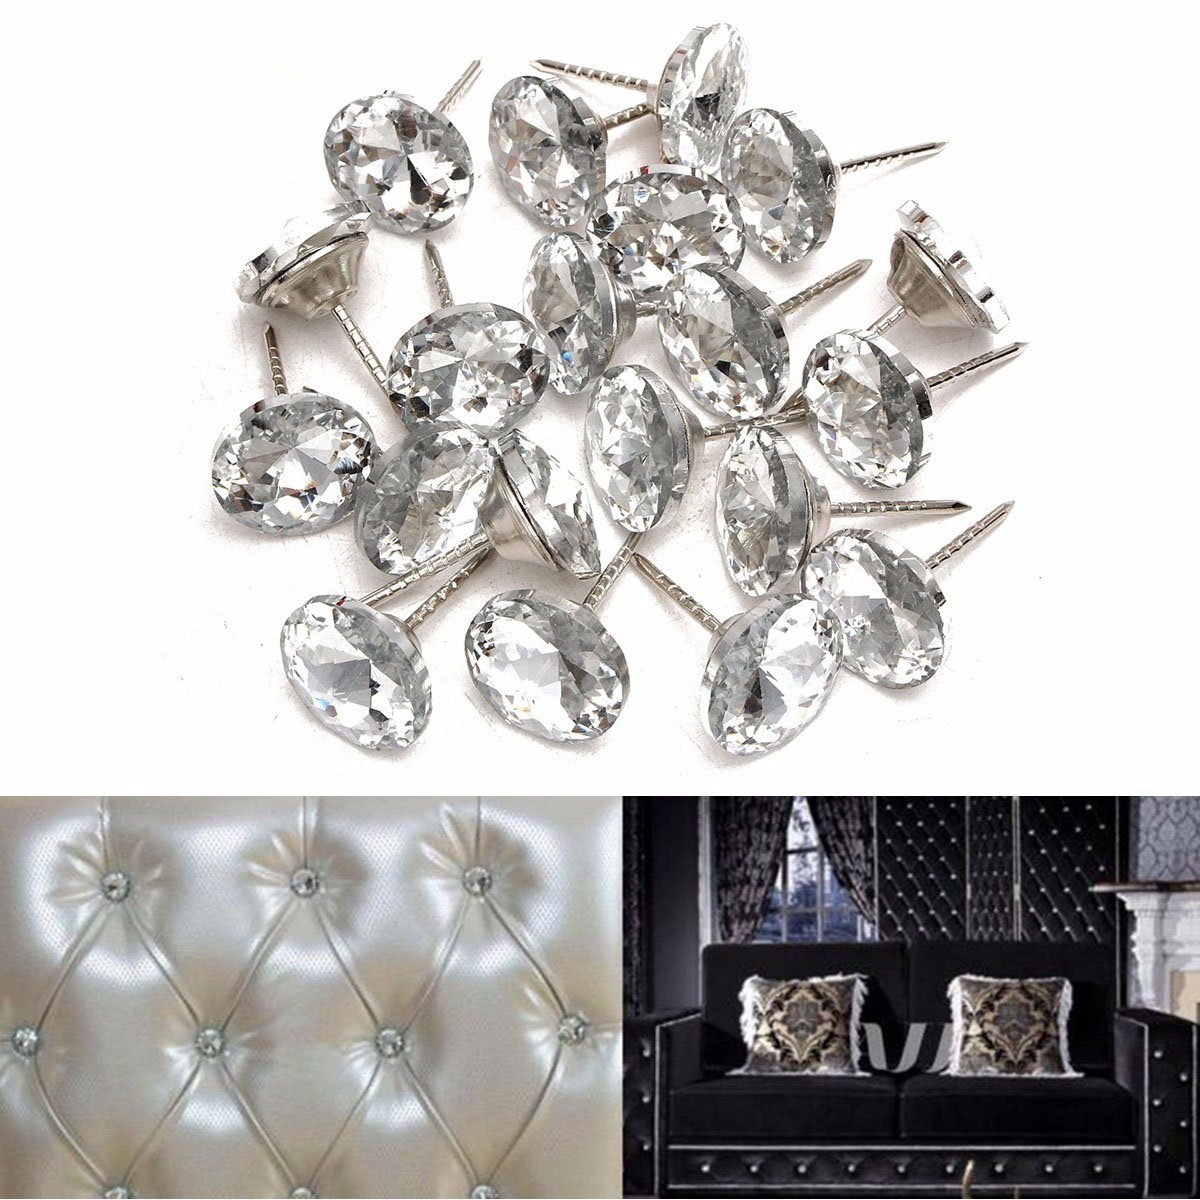 Hoomall 20 Sets Per Pack Crystal Buckle Soft Bag Sofa Nails Diamond Buckle Diamond Buttons Background Decorative Buckle